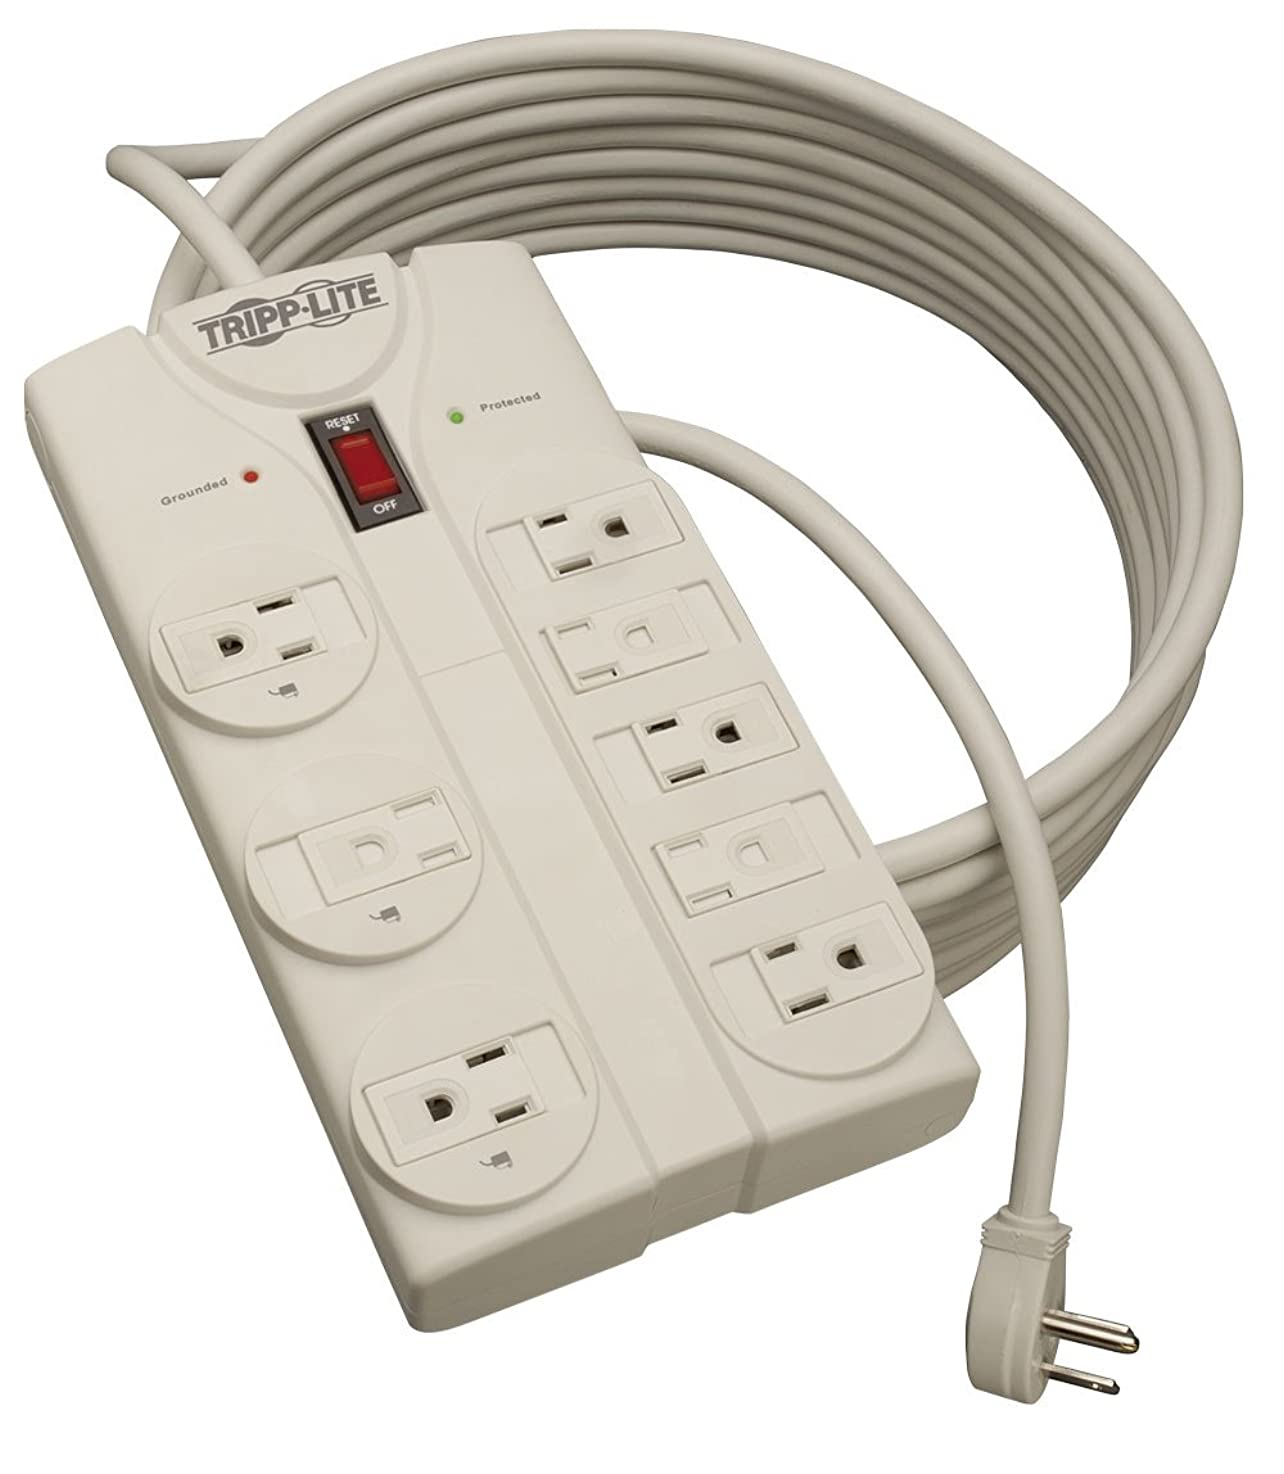 Tripp Lite 8 Outlet Surge Protector Power Strip, Extra Long Cord 25ft, Right-Angle Plug, Lifetime Limited Warranty & $75K INSURANCE (TLP825) qbeudadafcutm5